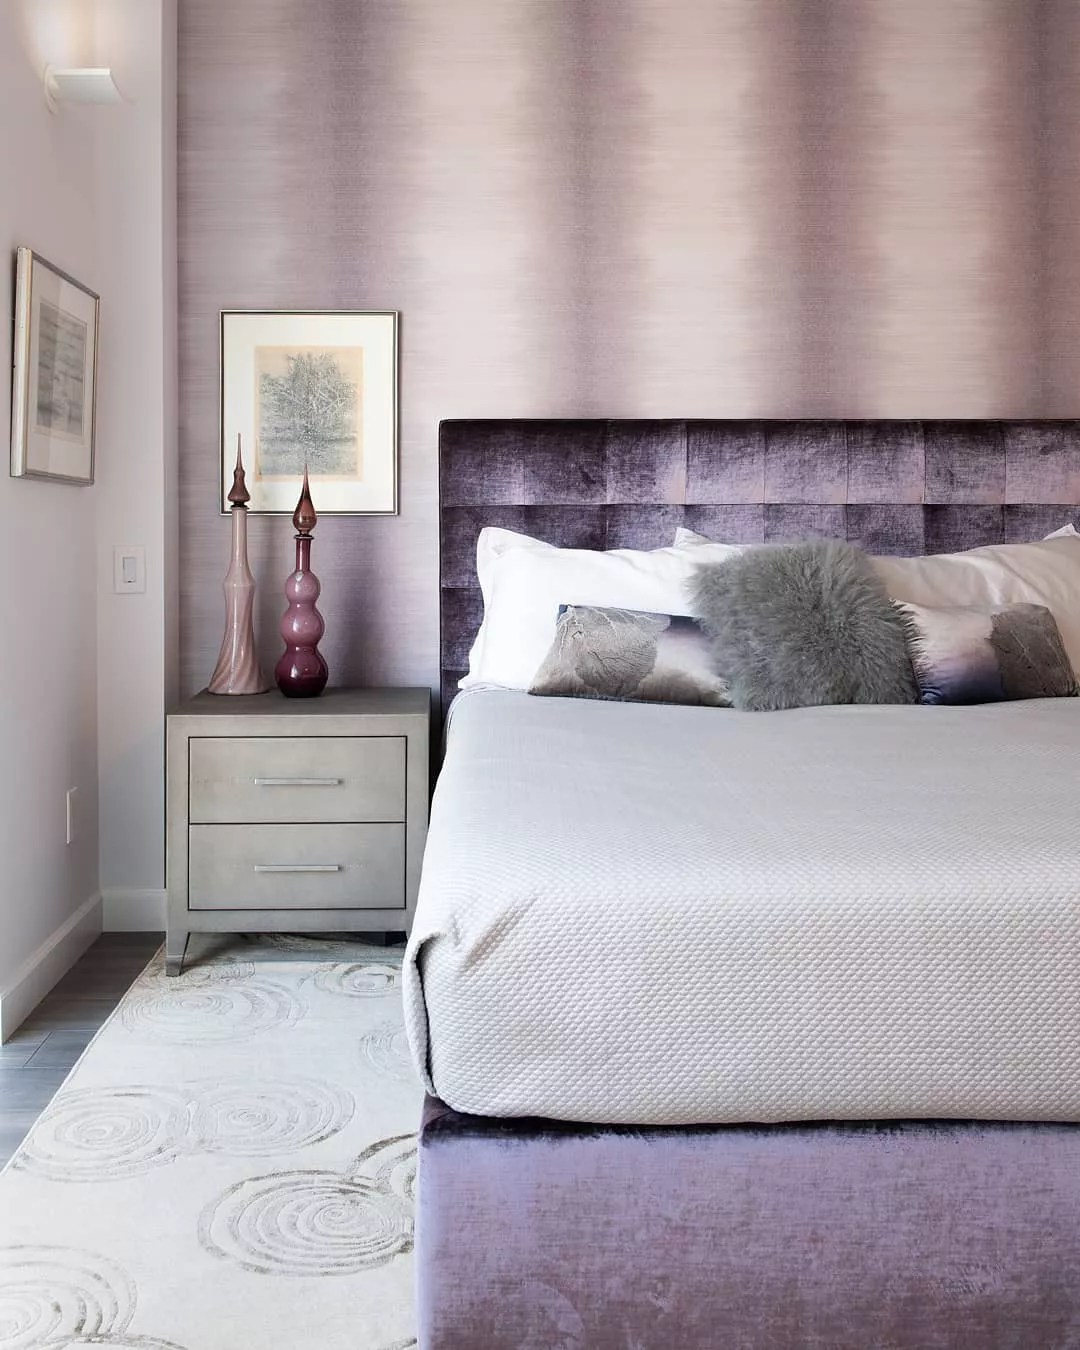 Bedroom with lavender-colored walls. Photo by Instagram user @cori_thune_interiors.